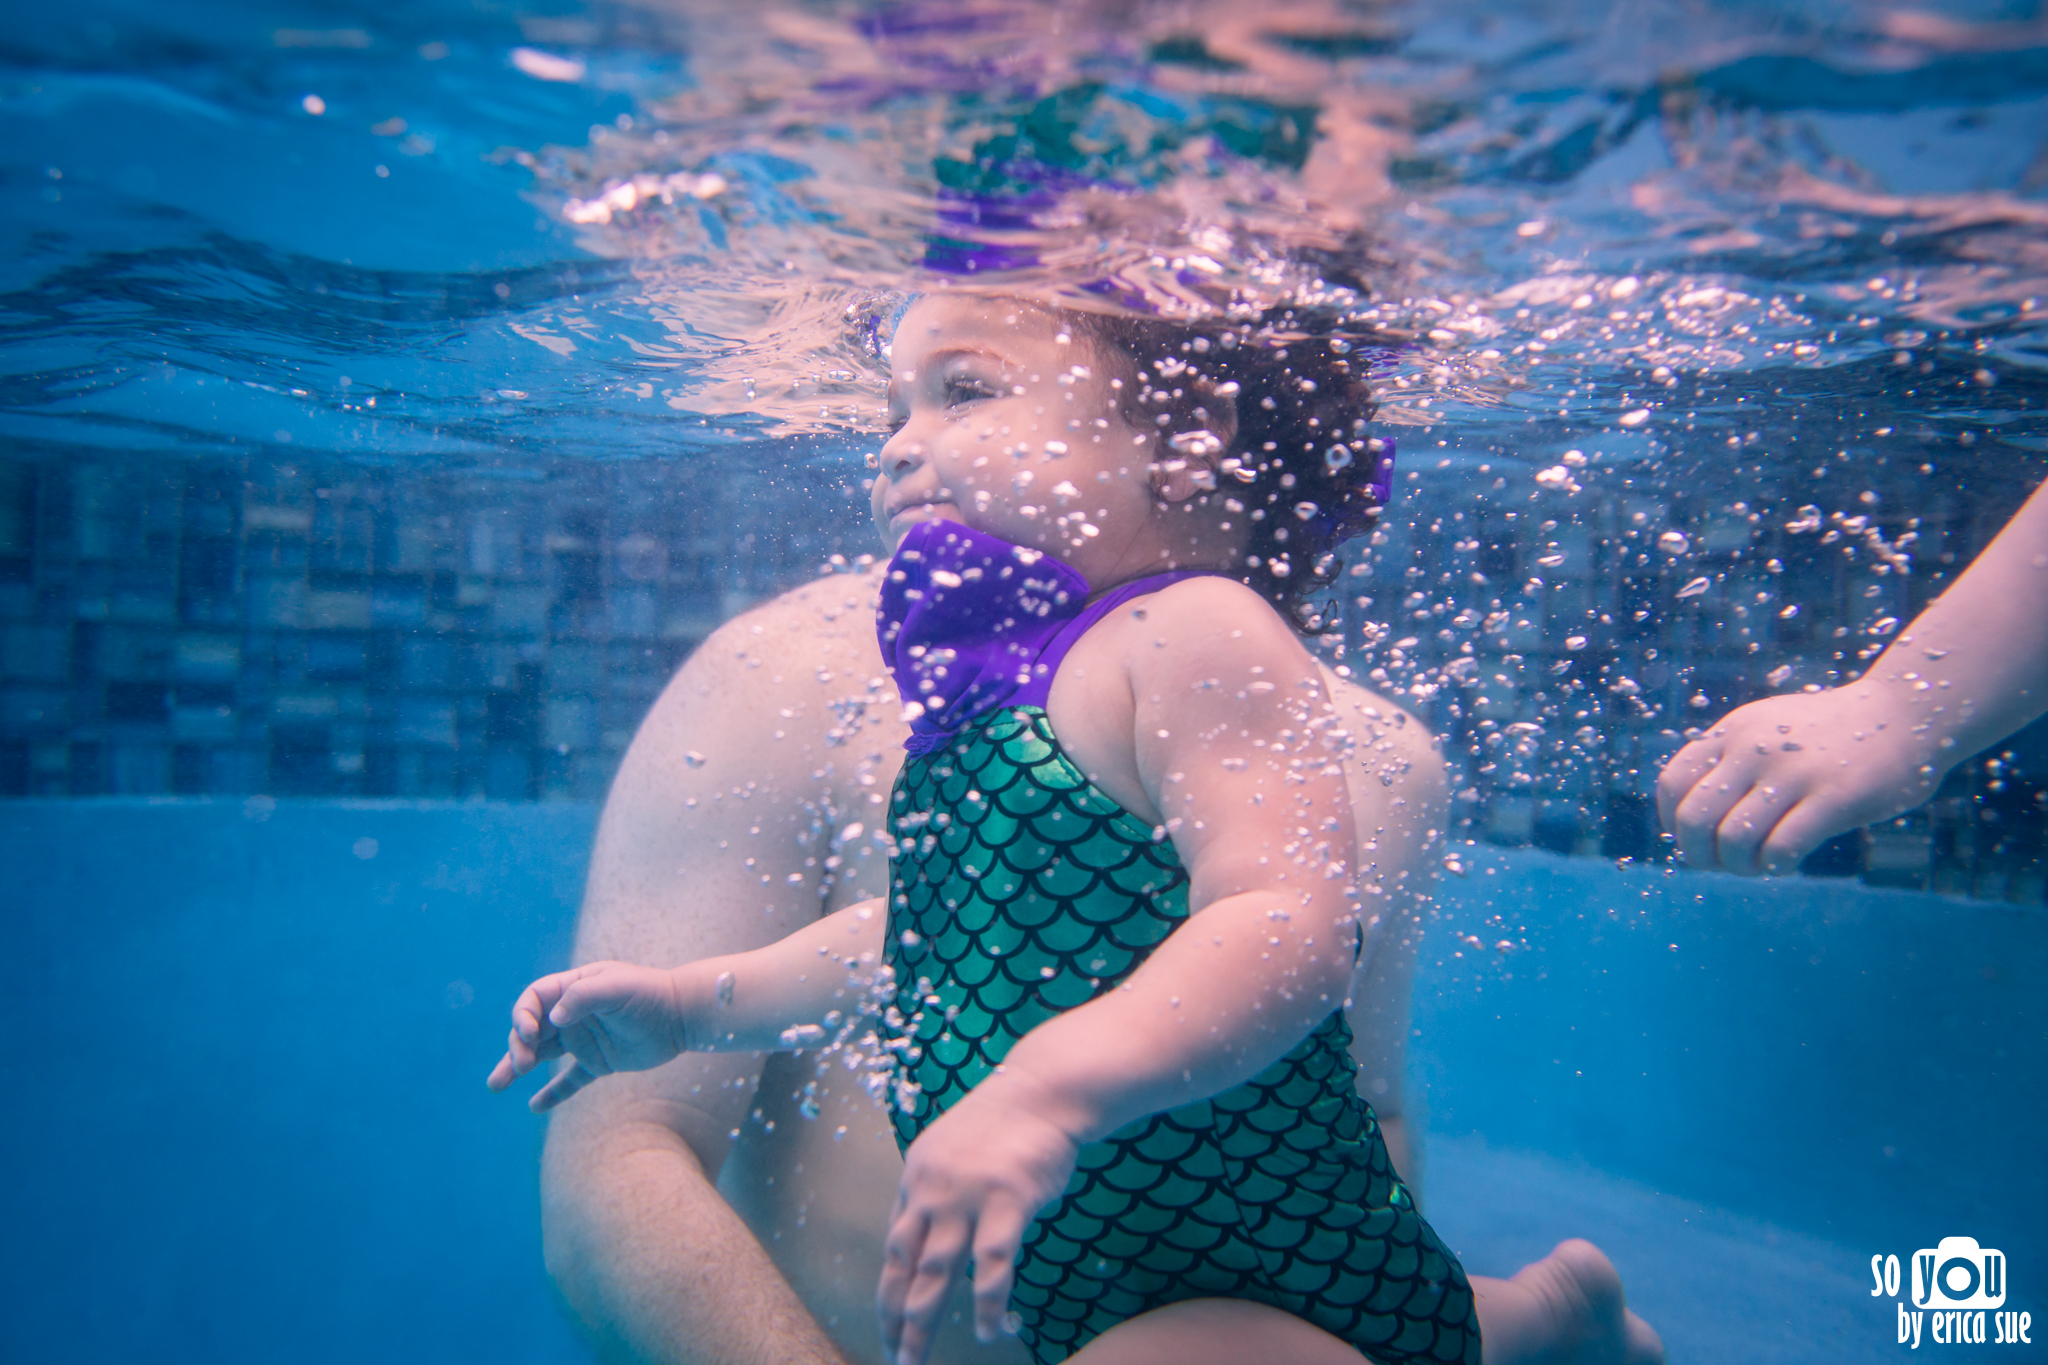 underwater-swim-family-photography-ft-lauderdale-so-you-by-erica-sue-1576.jpg